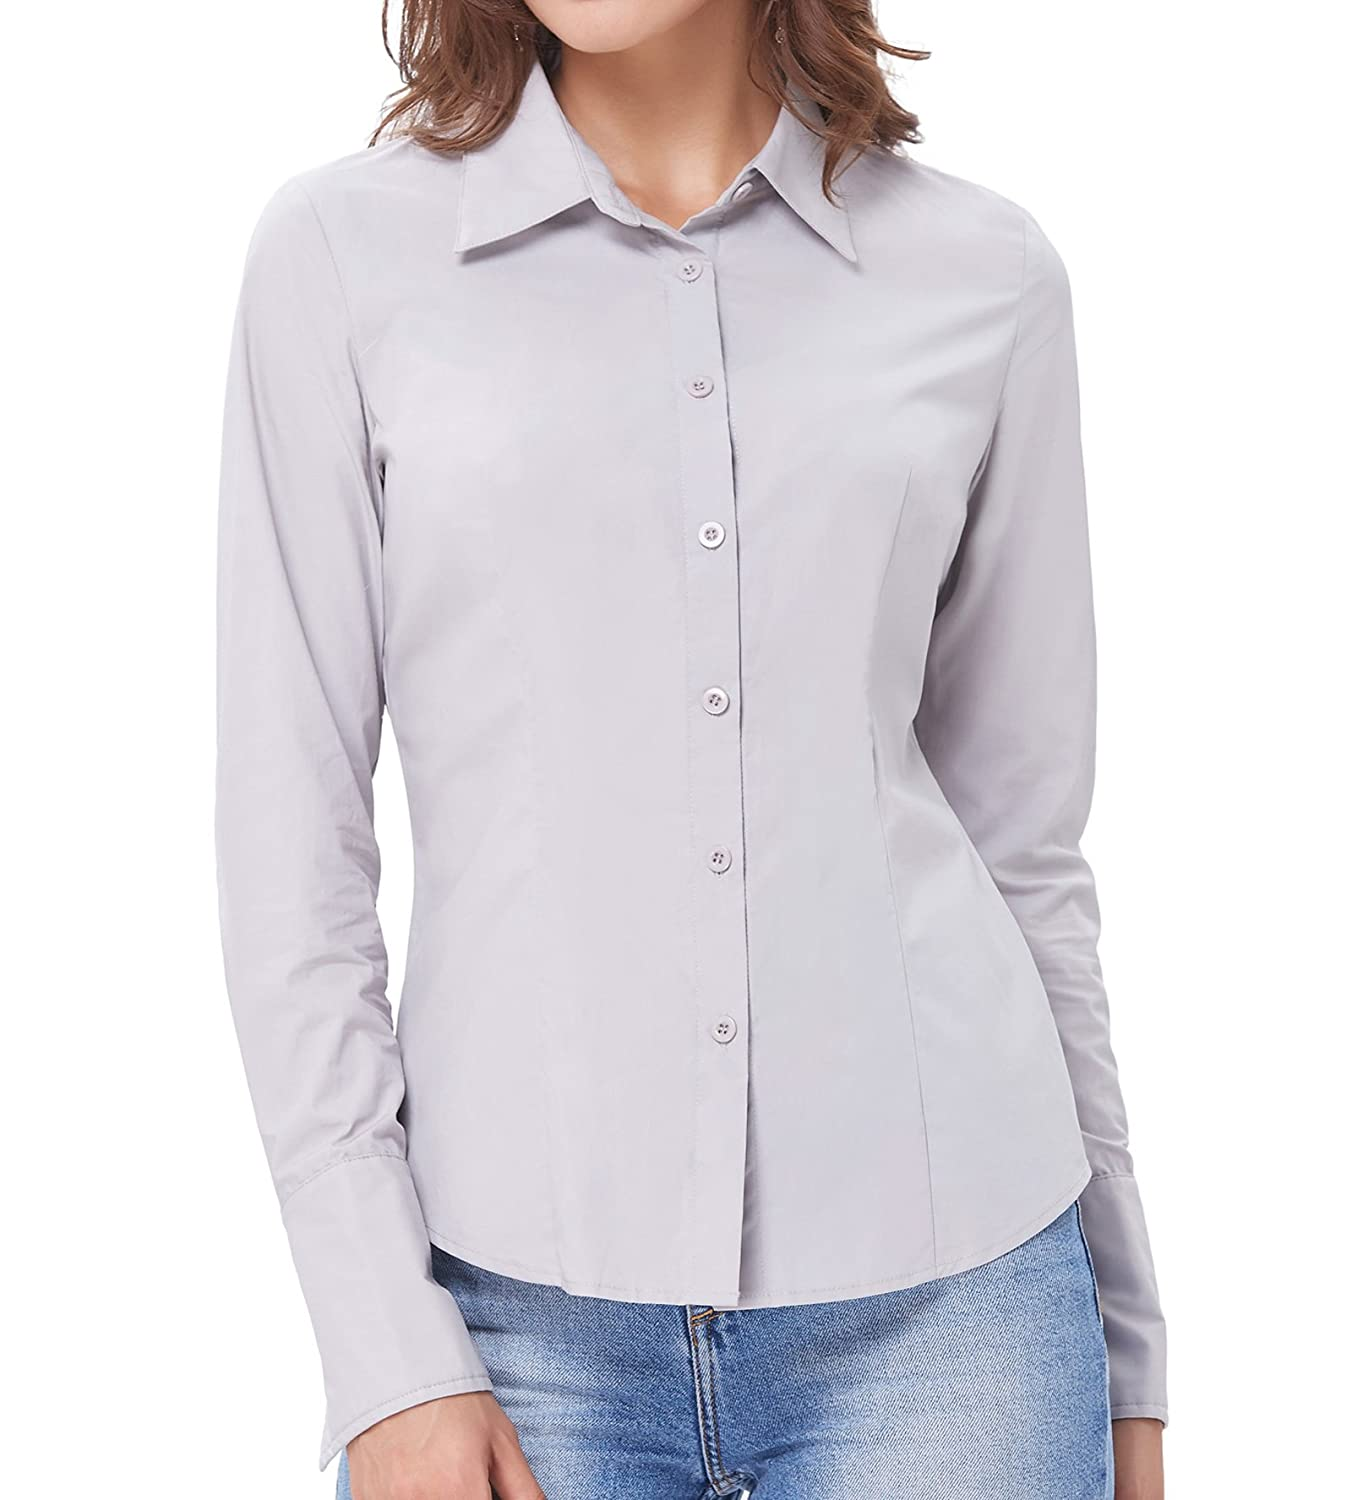 8bc8a89f89a Top 10 wholesale Collar Cutting And Sewing - Chinabrands.com